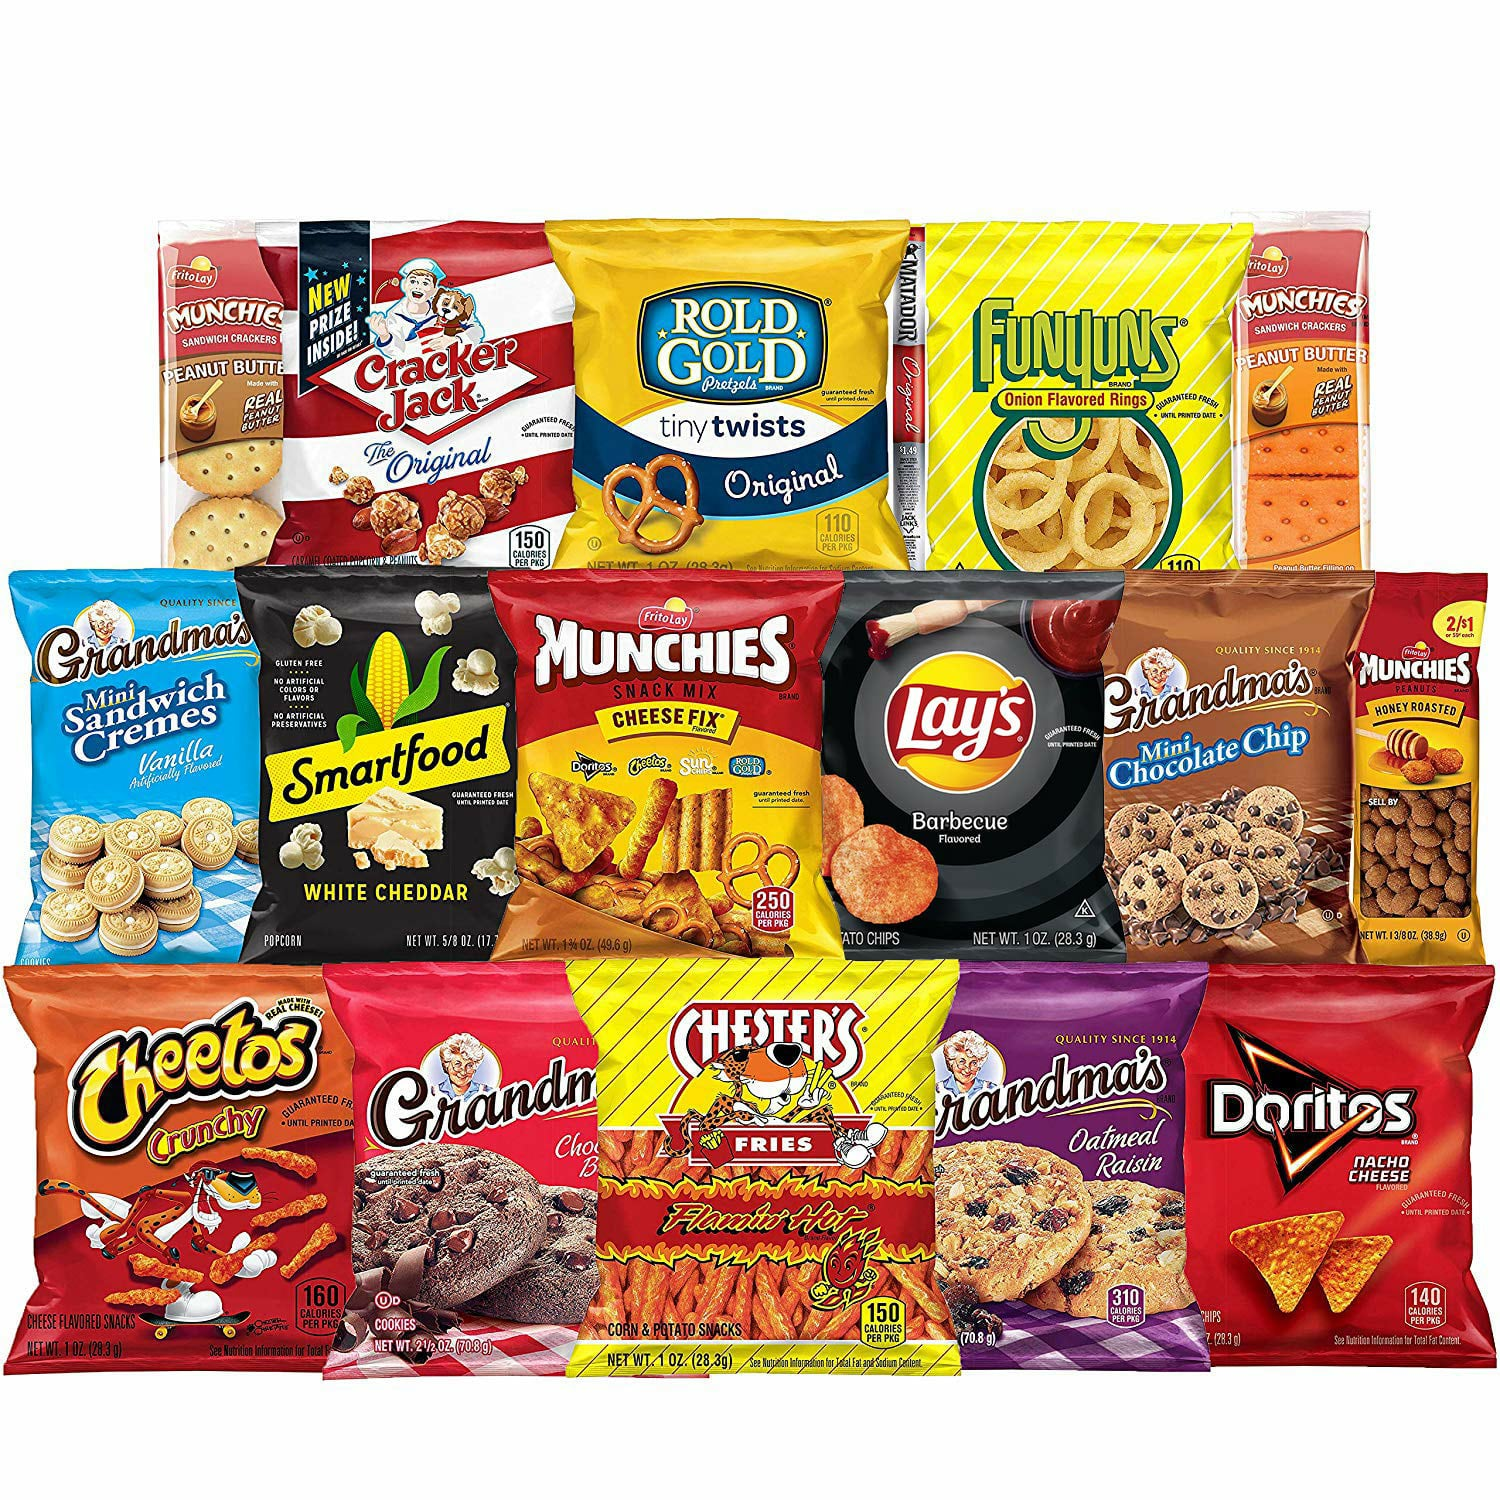 Amazon.com : Frito-Lay Ultimate Snack Care Package, Variety Assortment of Chips, Cookies, Crackers & More, 40 Count : Everything Else $14.23